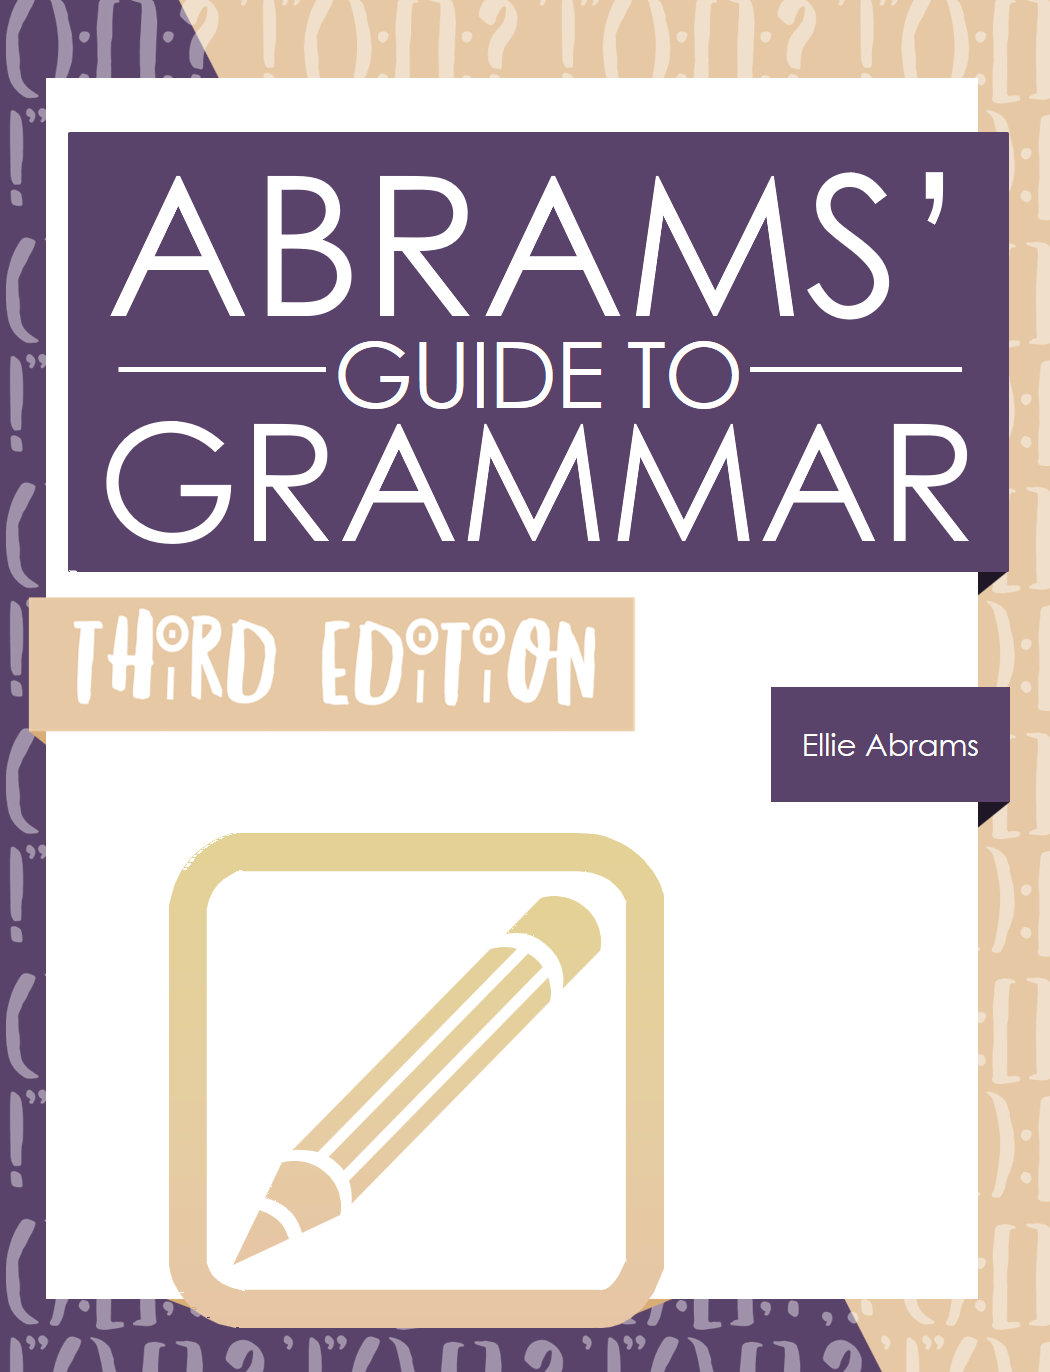 Abrams' Guide to Grammar: Third Edition